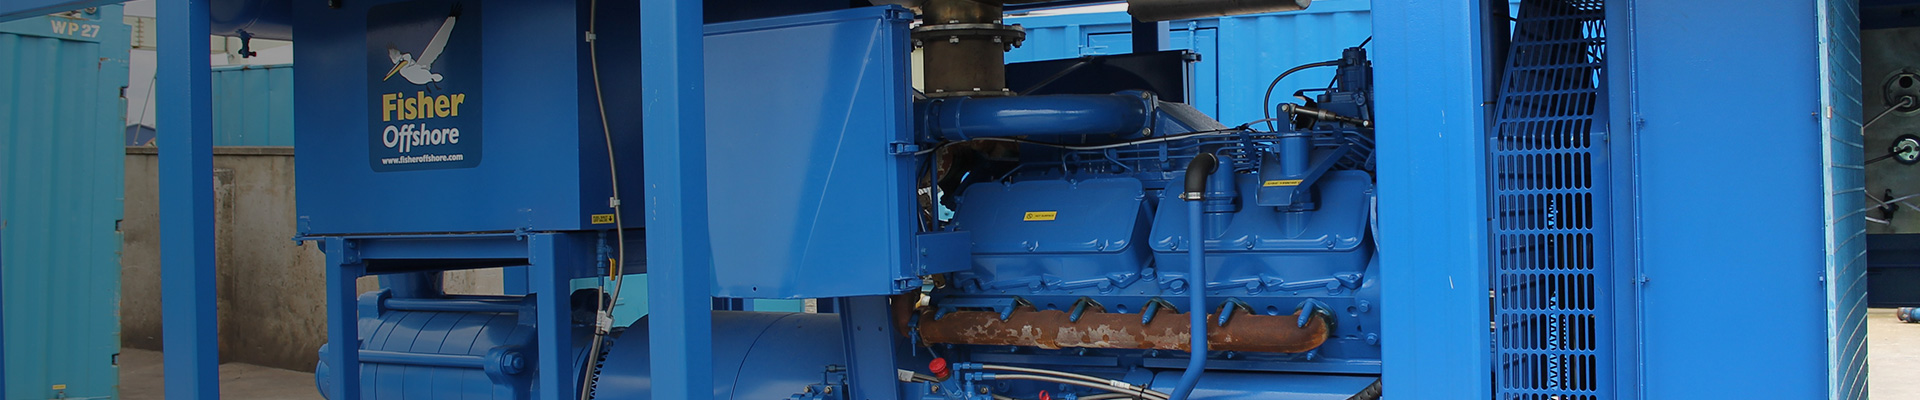 James Fisher Offshore | Centrifugal pumps